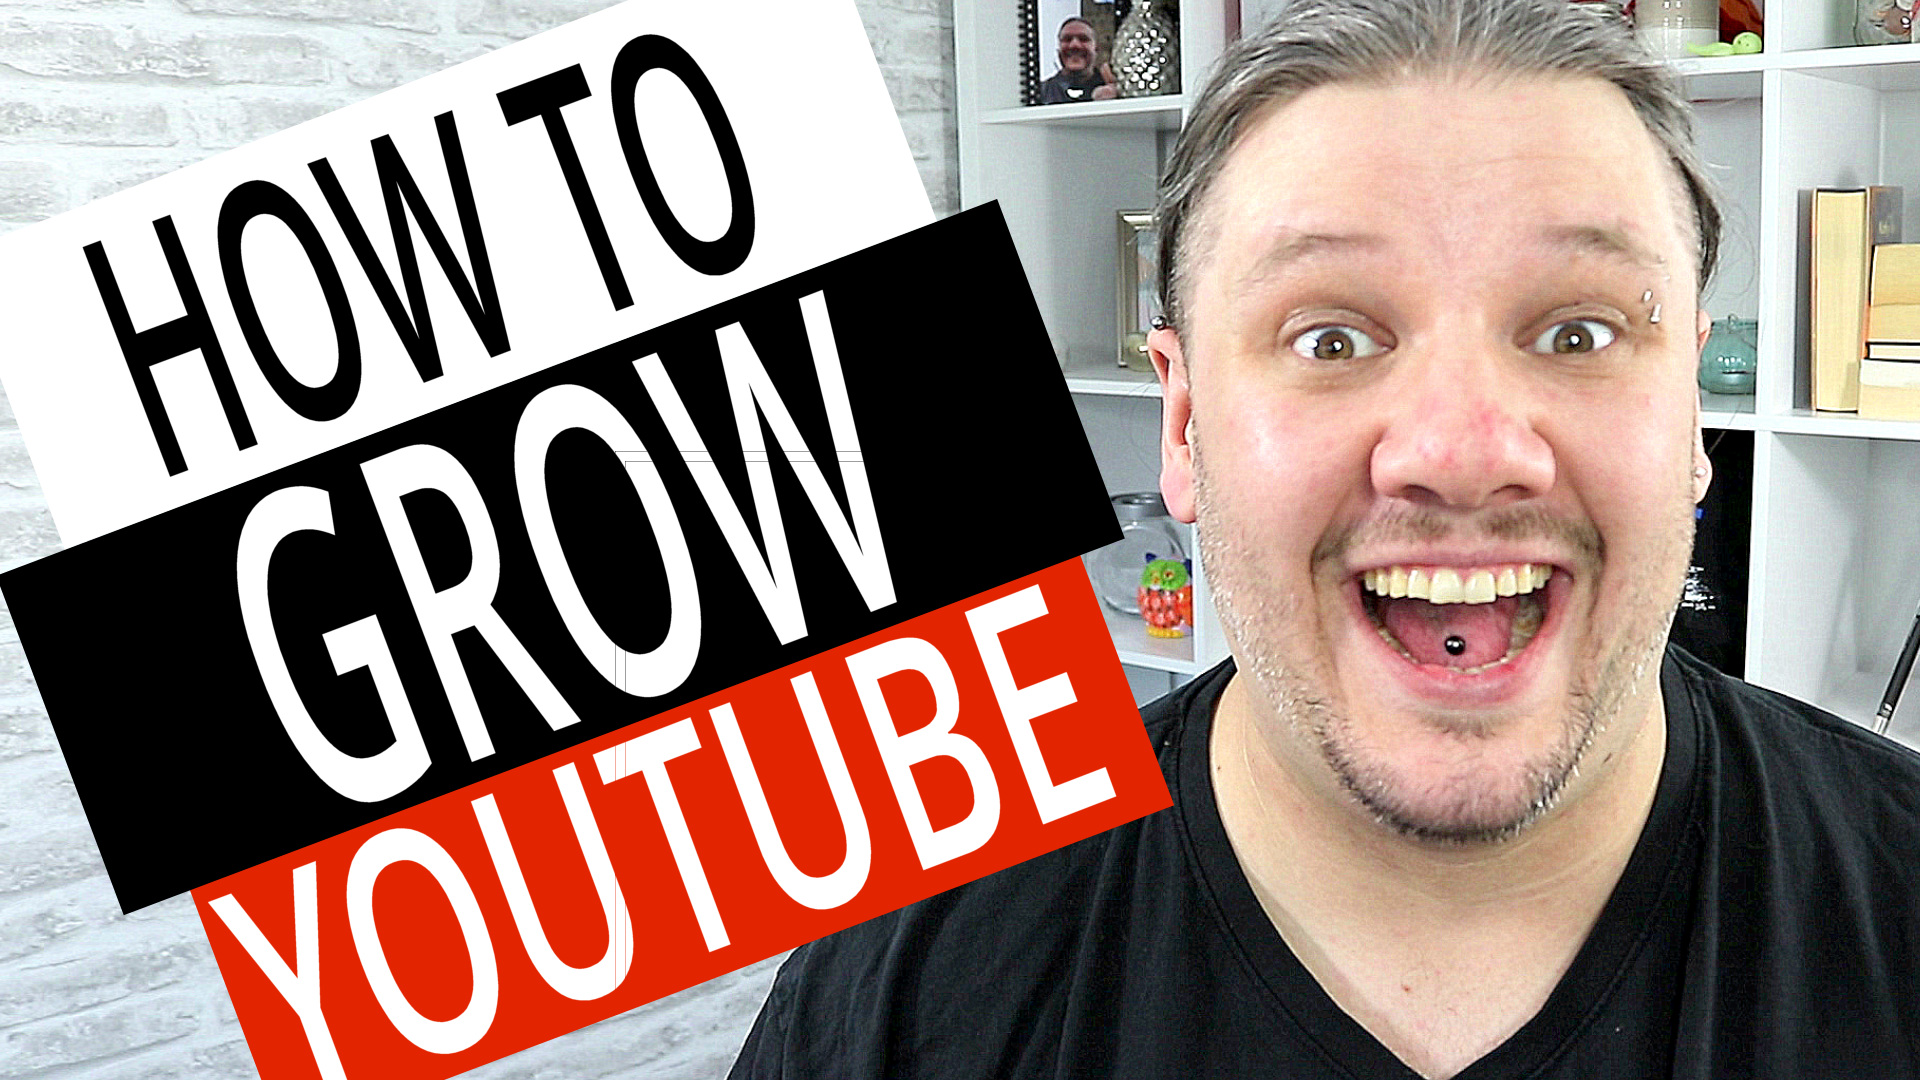 alan spicer,how to grow your youtube channel,how to grow on youtube,how to grow your youtube channel fast,how to grow your youtube channel faster,youtube channel growth strategy,how to,how to grow on youtube 2019,grow on youtube with how tos,grow on youtube,grow on youtube 2019,youtube channel growth strategy 2019,grow your youtube channel fast,youtube growth strategies 2019,youtube growth strategies,youtube growth strategy,youtube growth,grow,grow youtube